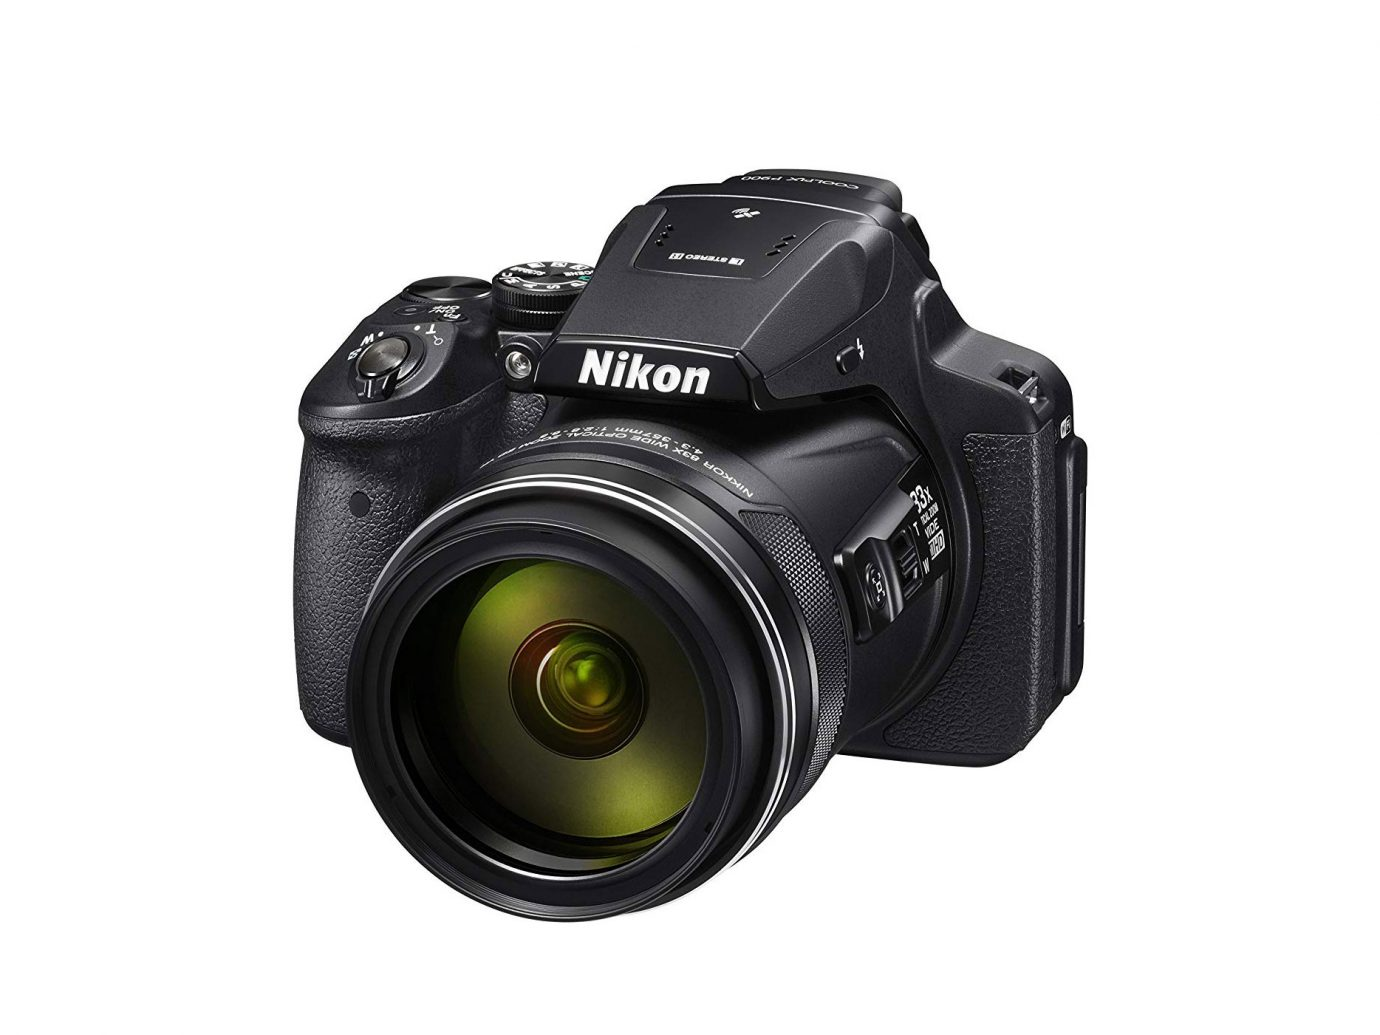 Nikon COOLPIX P900 Digital Camera with 83x Optical Zoom and Built-In Wi-Fi(